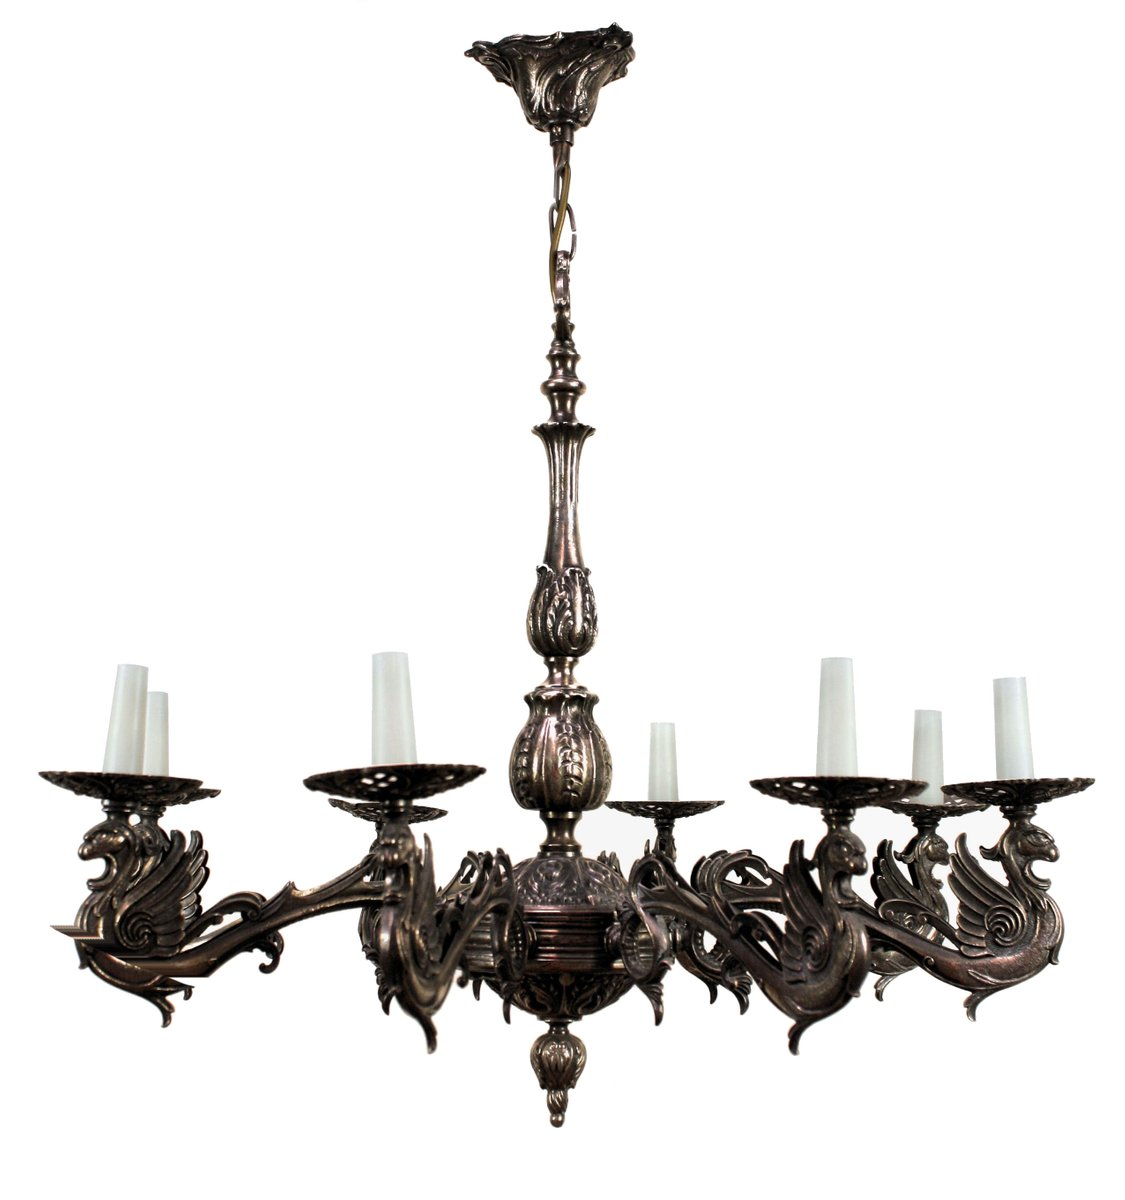 lustre gothique en bronze argent france 1900s en vente sur pamono. Black Bedroom Furniture Sets. Home Design Ideas